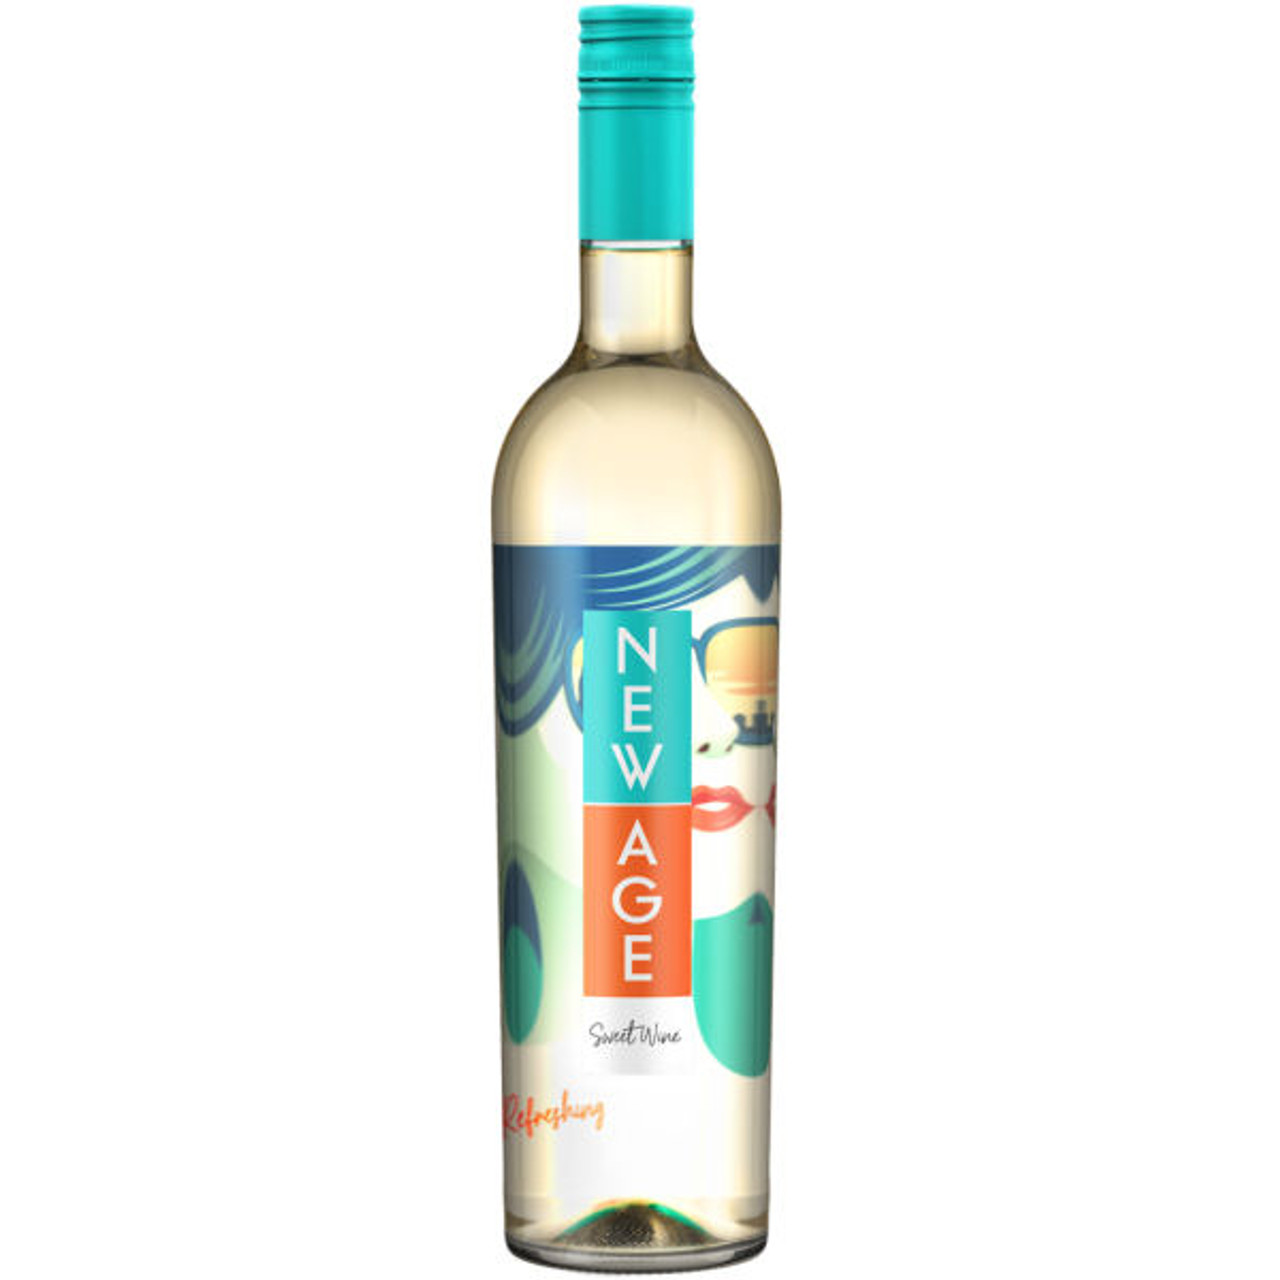 Bianchi New Age White Wine NV